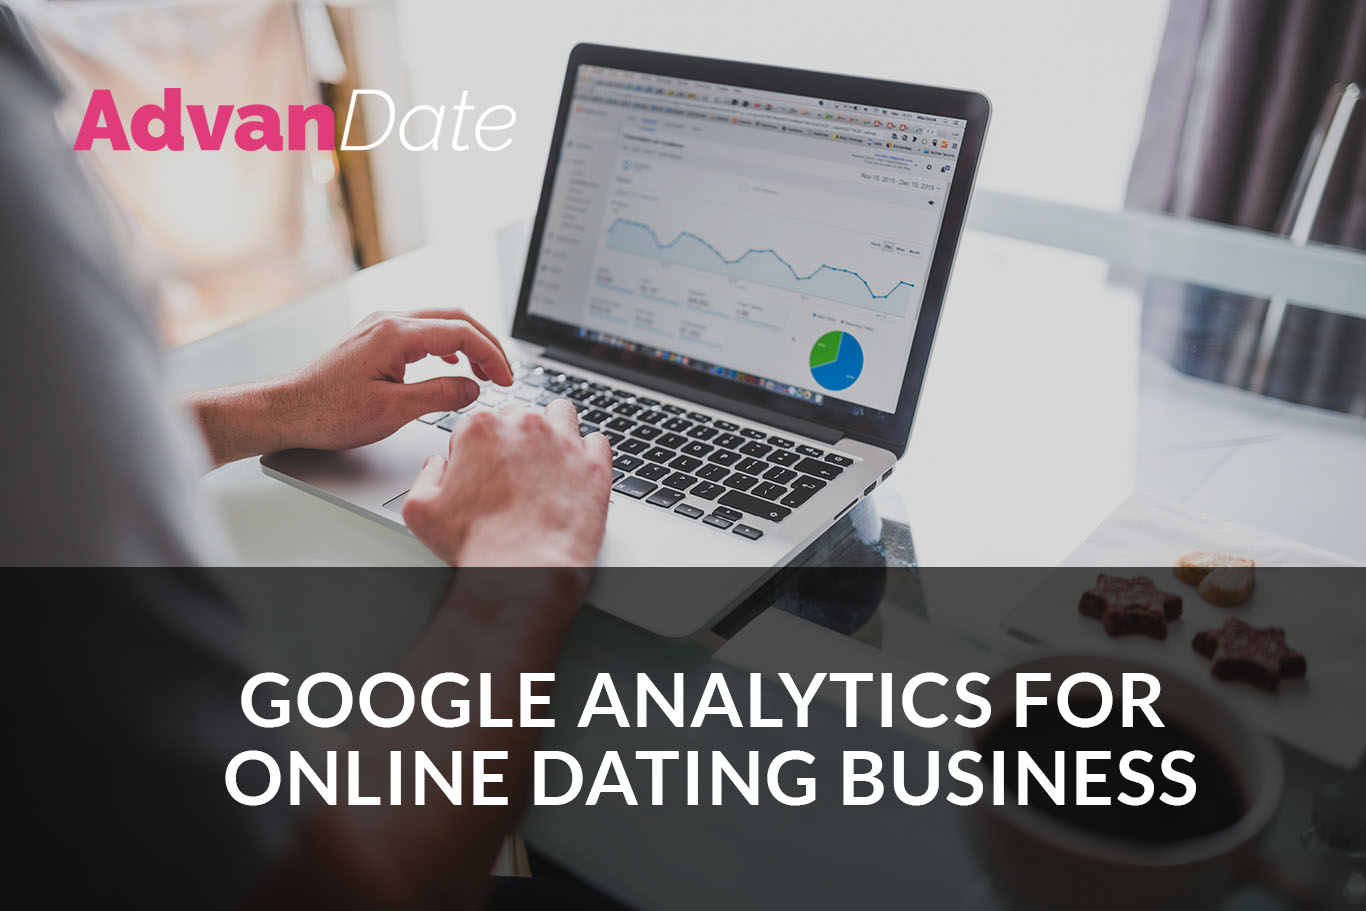 Google analytics for online dating business: How to measure success?